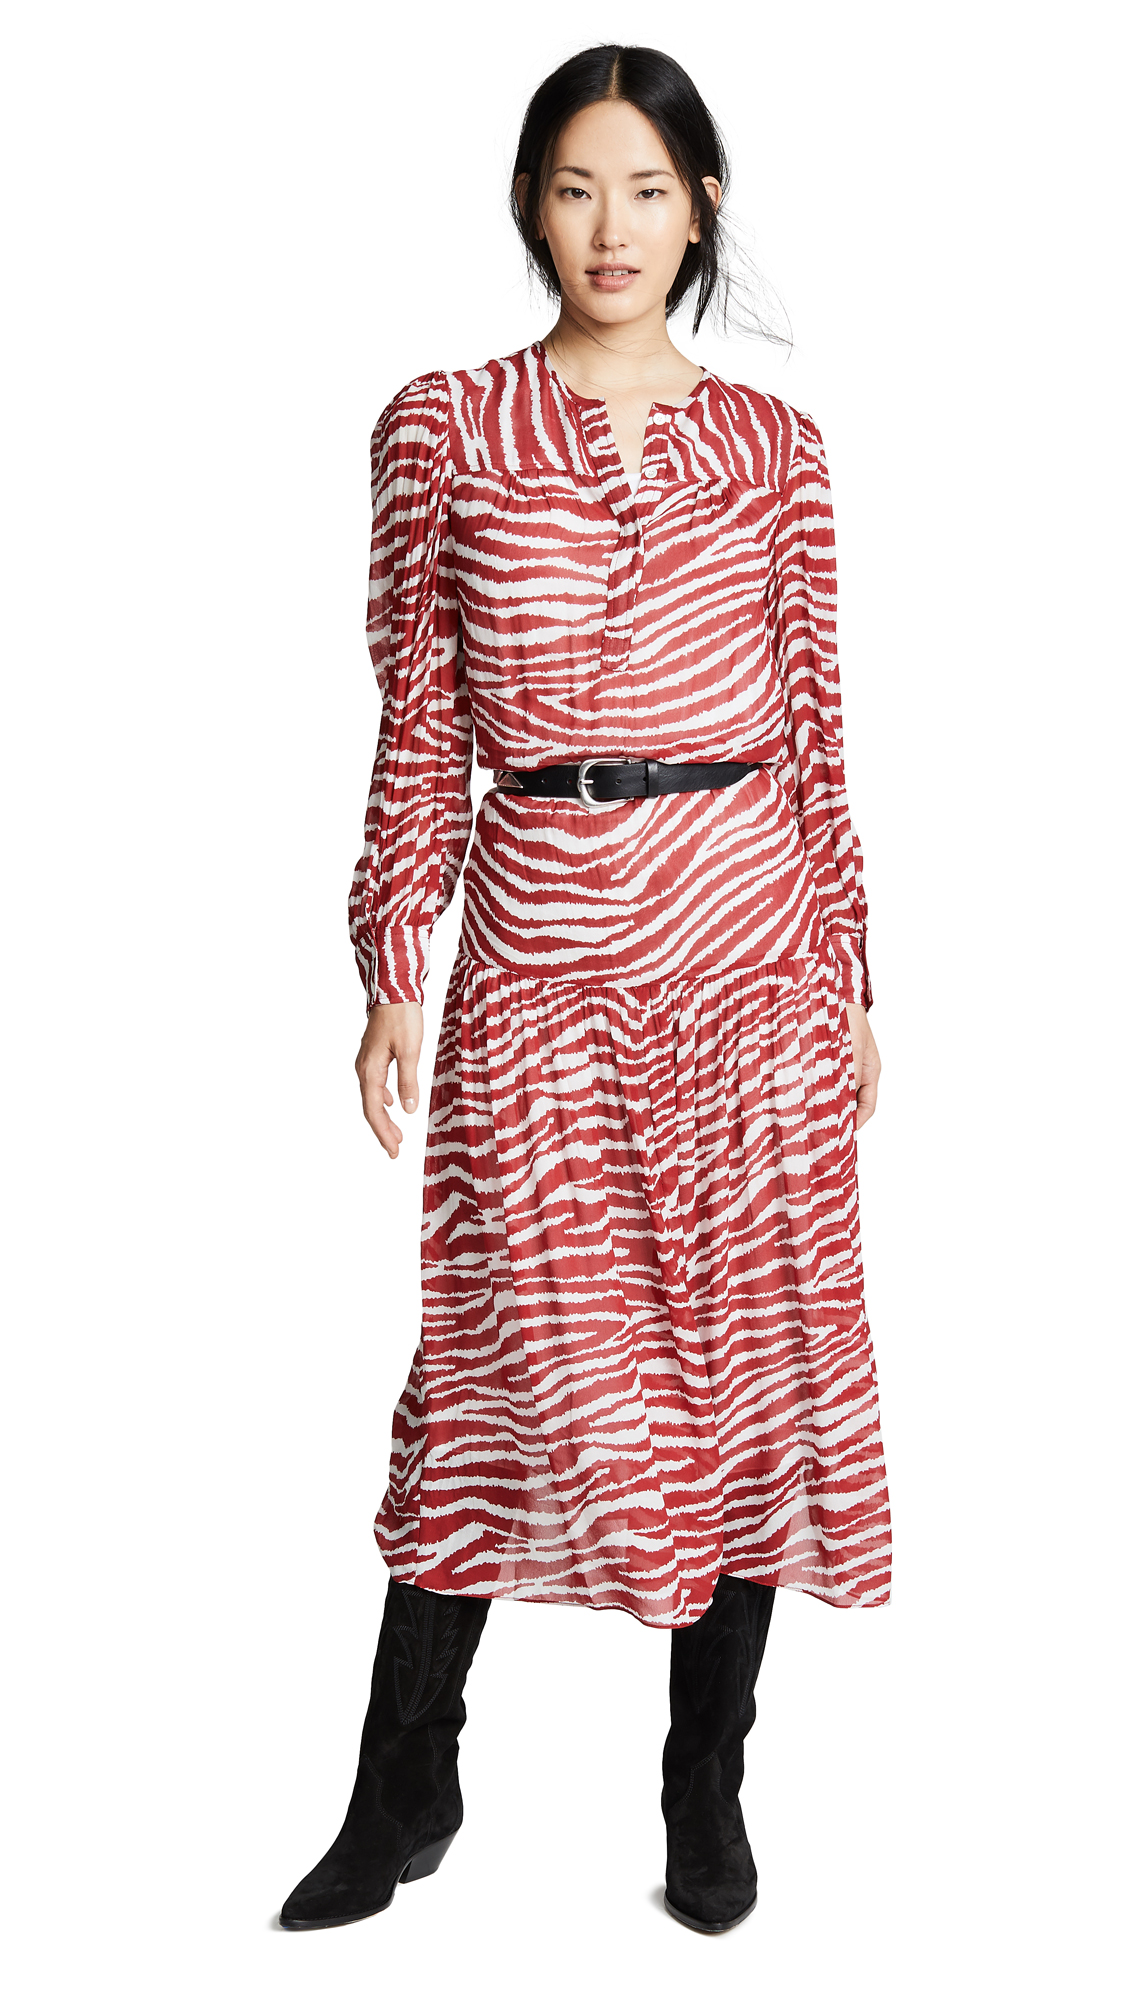 Isabel Marant Etoile Jina Dress In Red